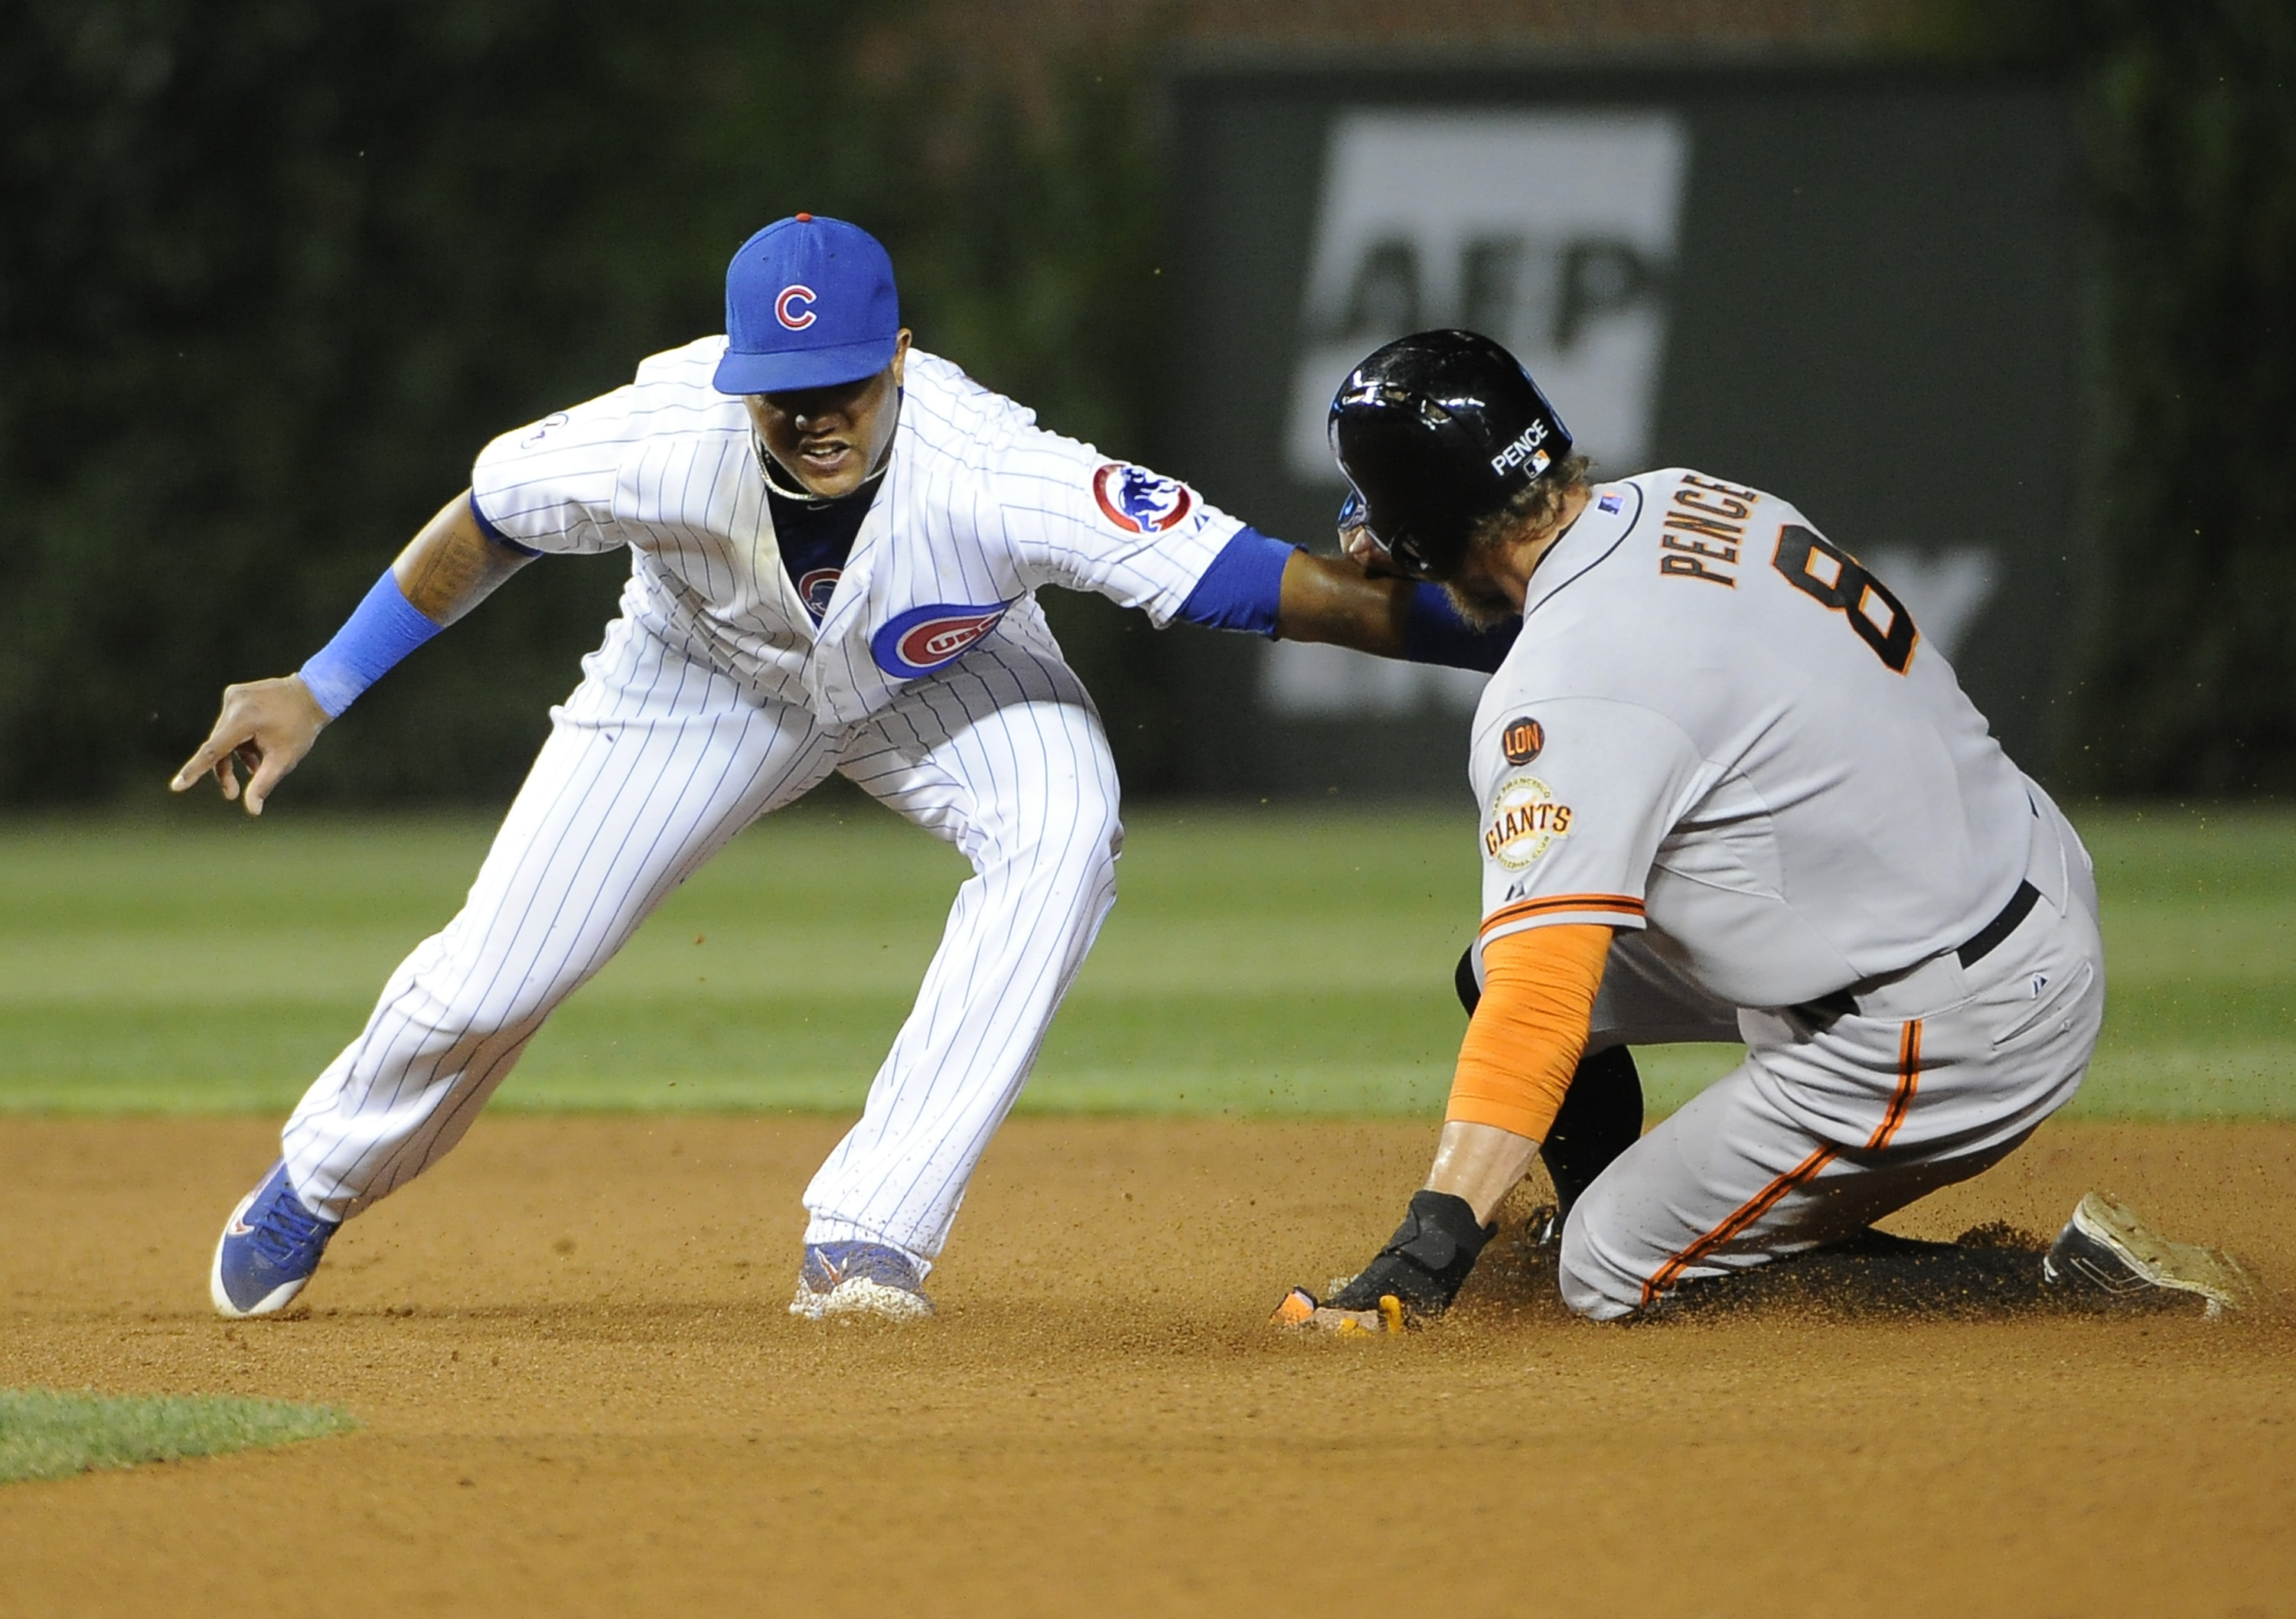 San Francisco Giants' Hunter Pence (8) steals second base as Chicago Cubs shortstop Starlin Castro, left, makes a late tag during the sixth inning of a baseball game, Thursday, Aug. 6, 2015, in Chicago. (AP Photo/David Banks)